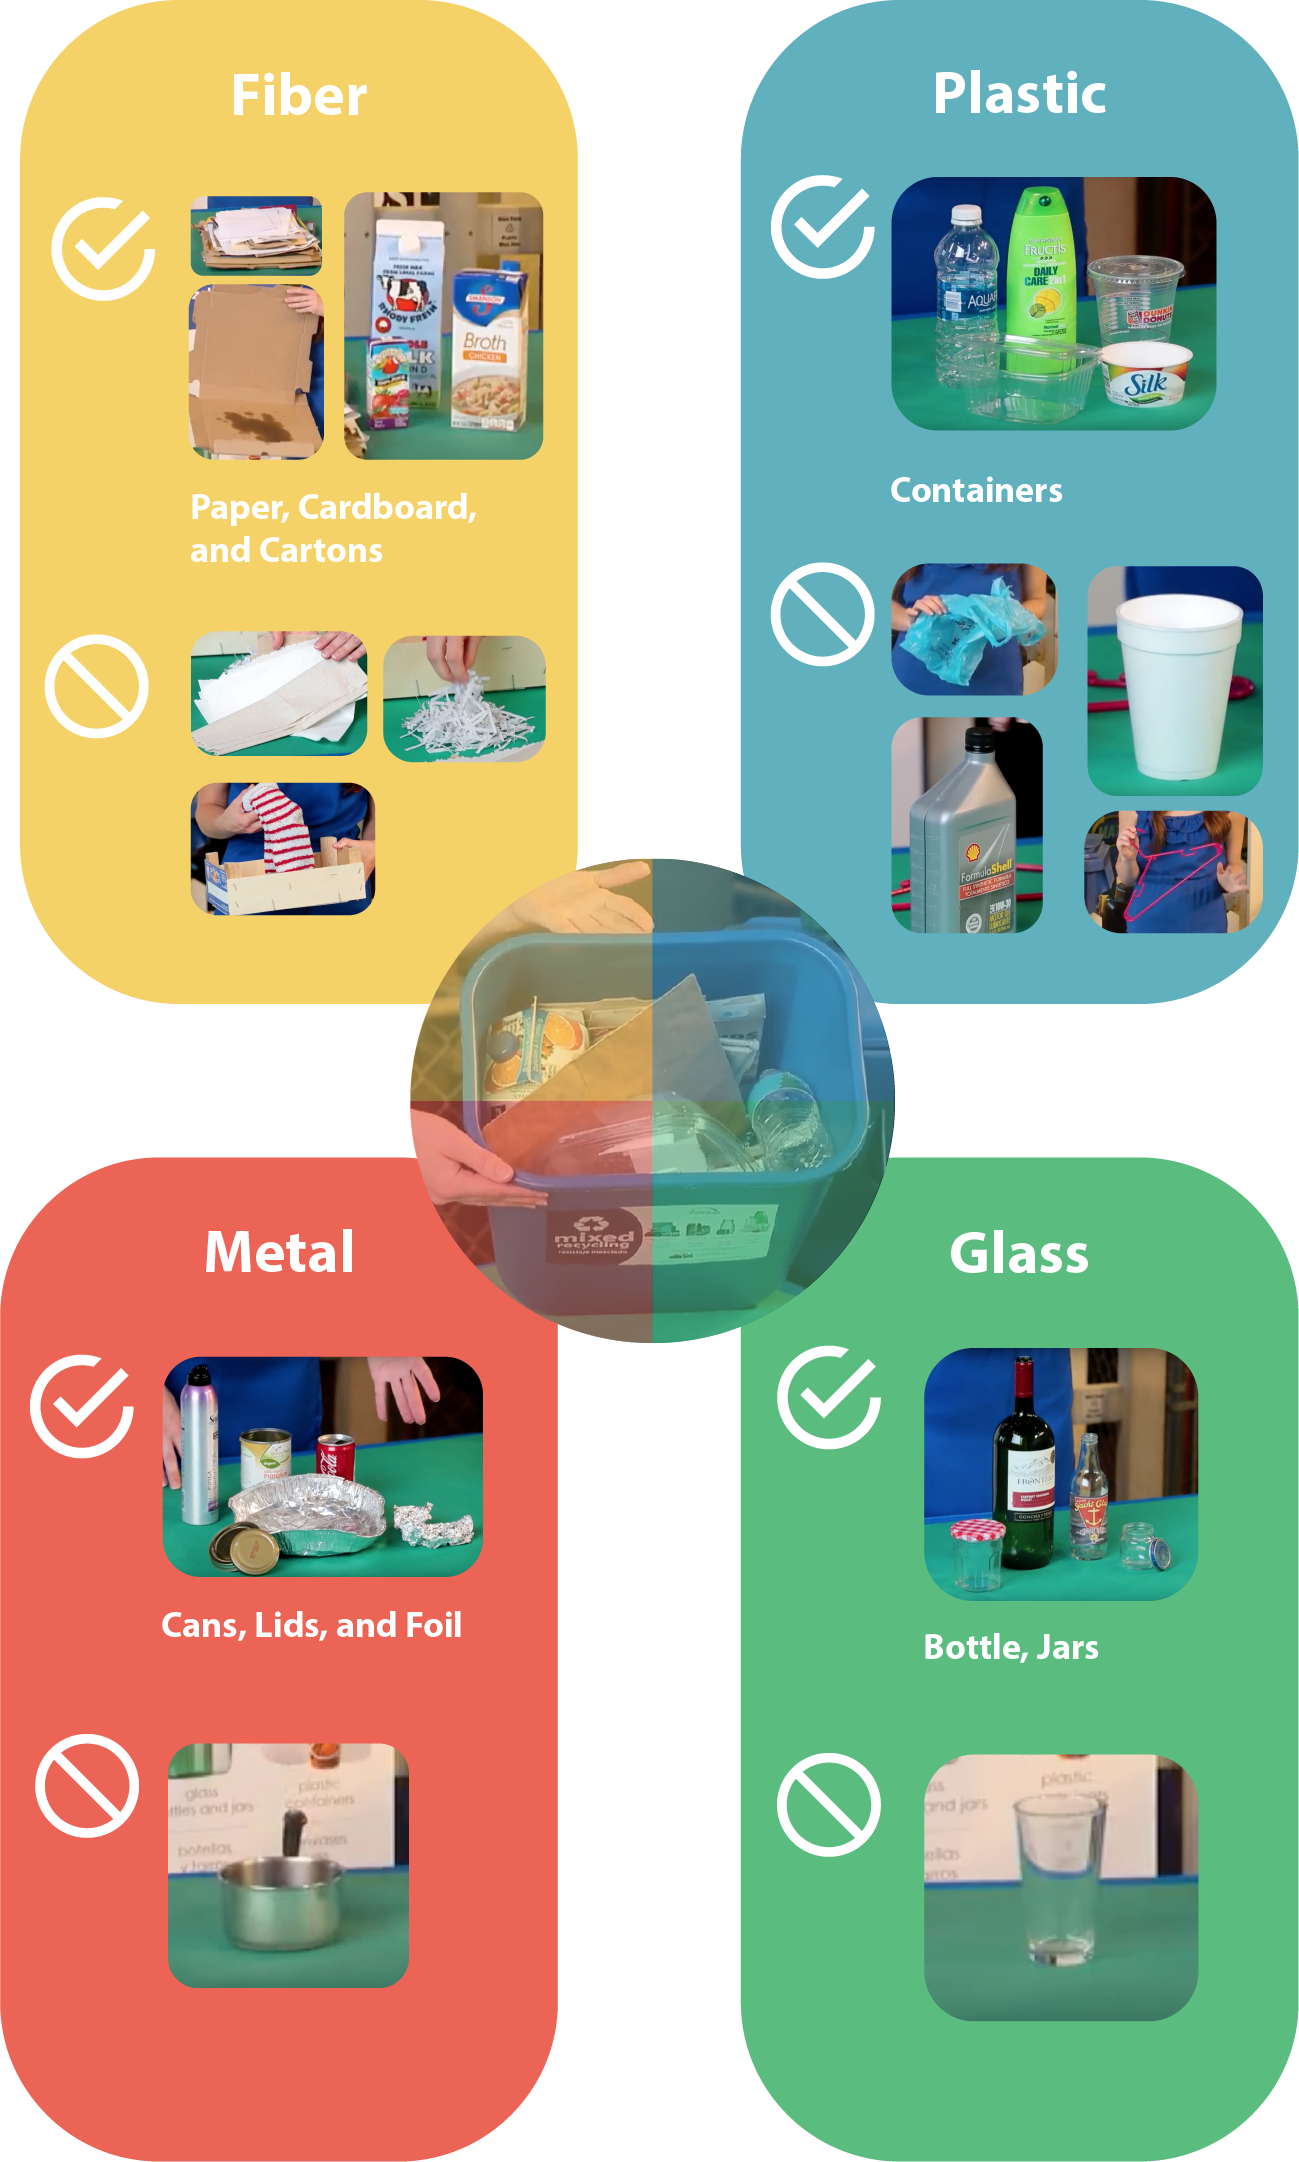 What can be recycled and what cannot based on RI recycling rules